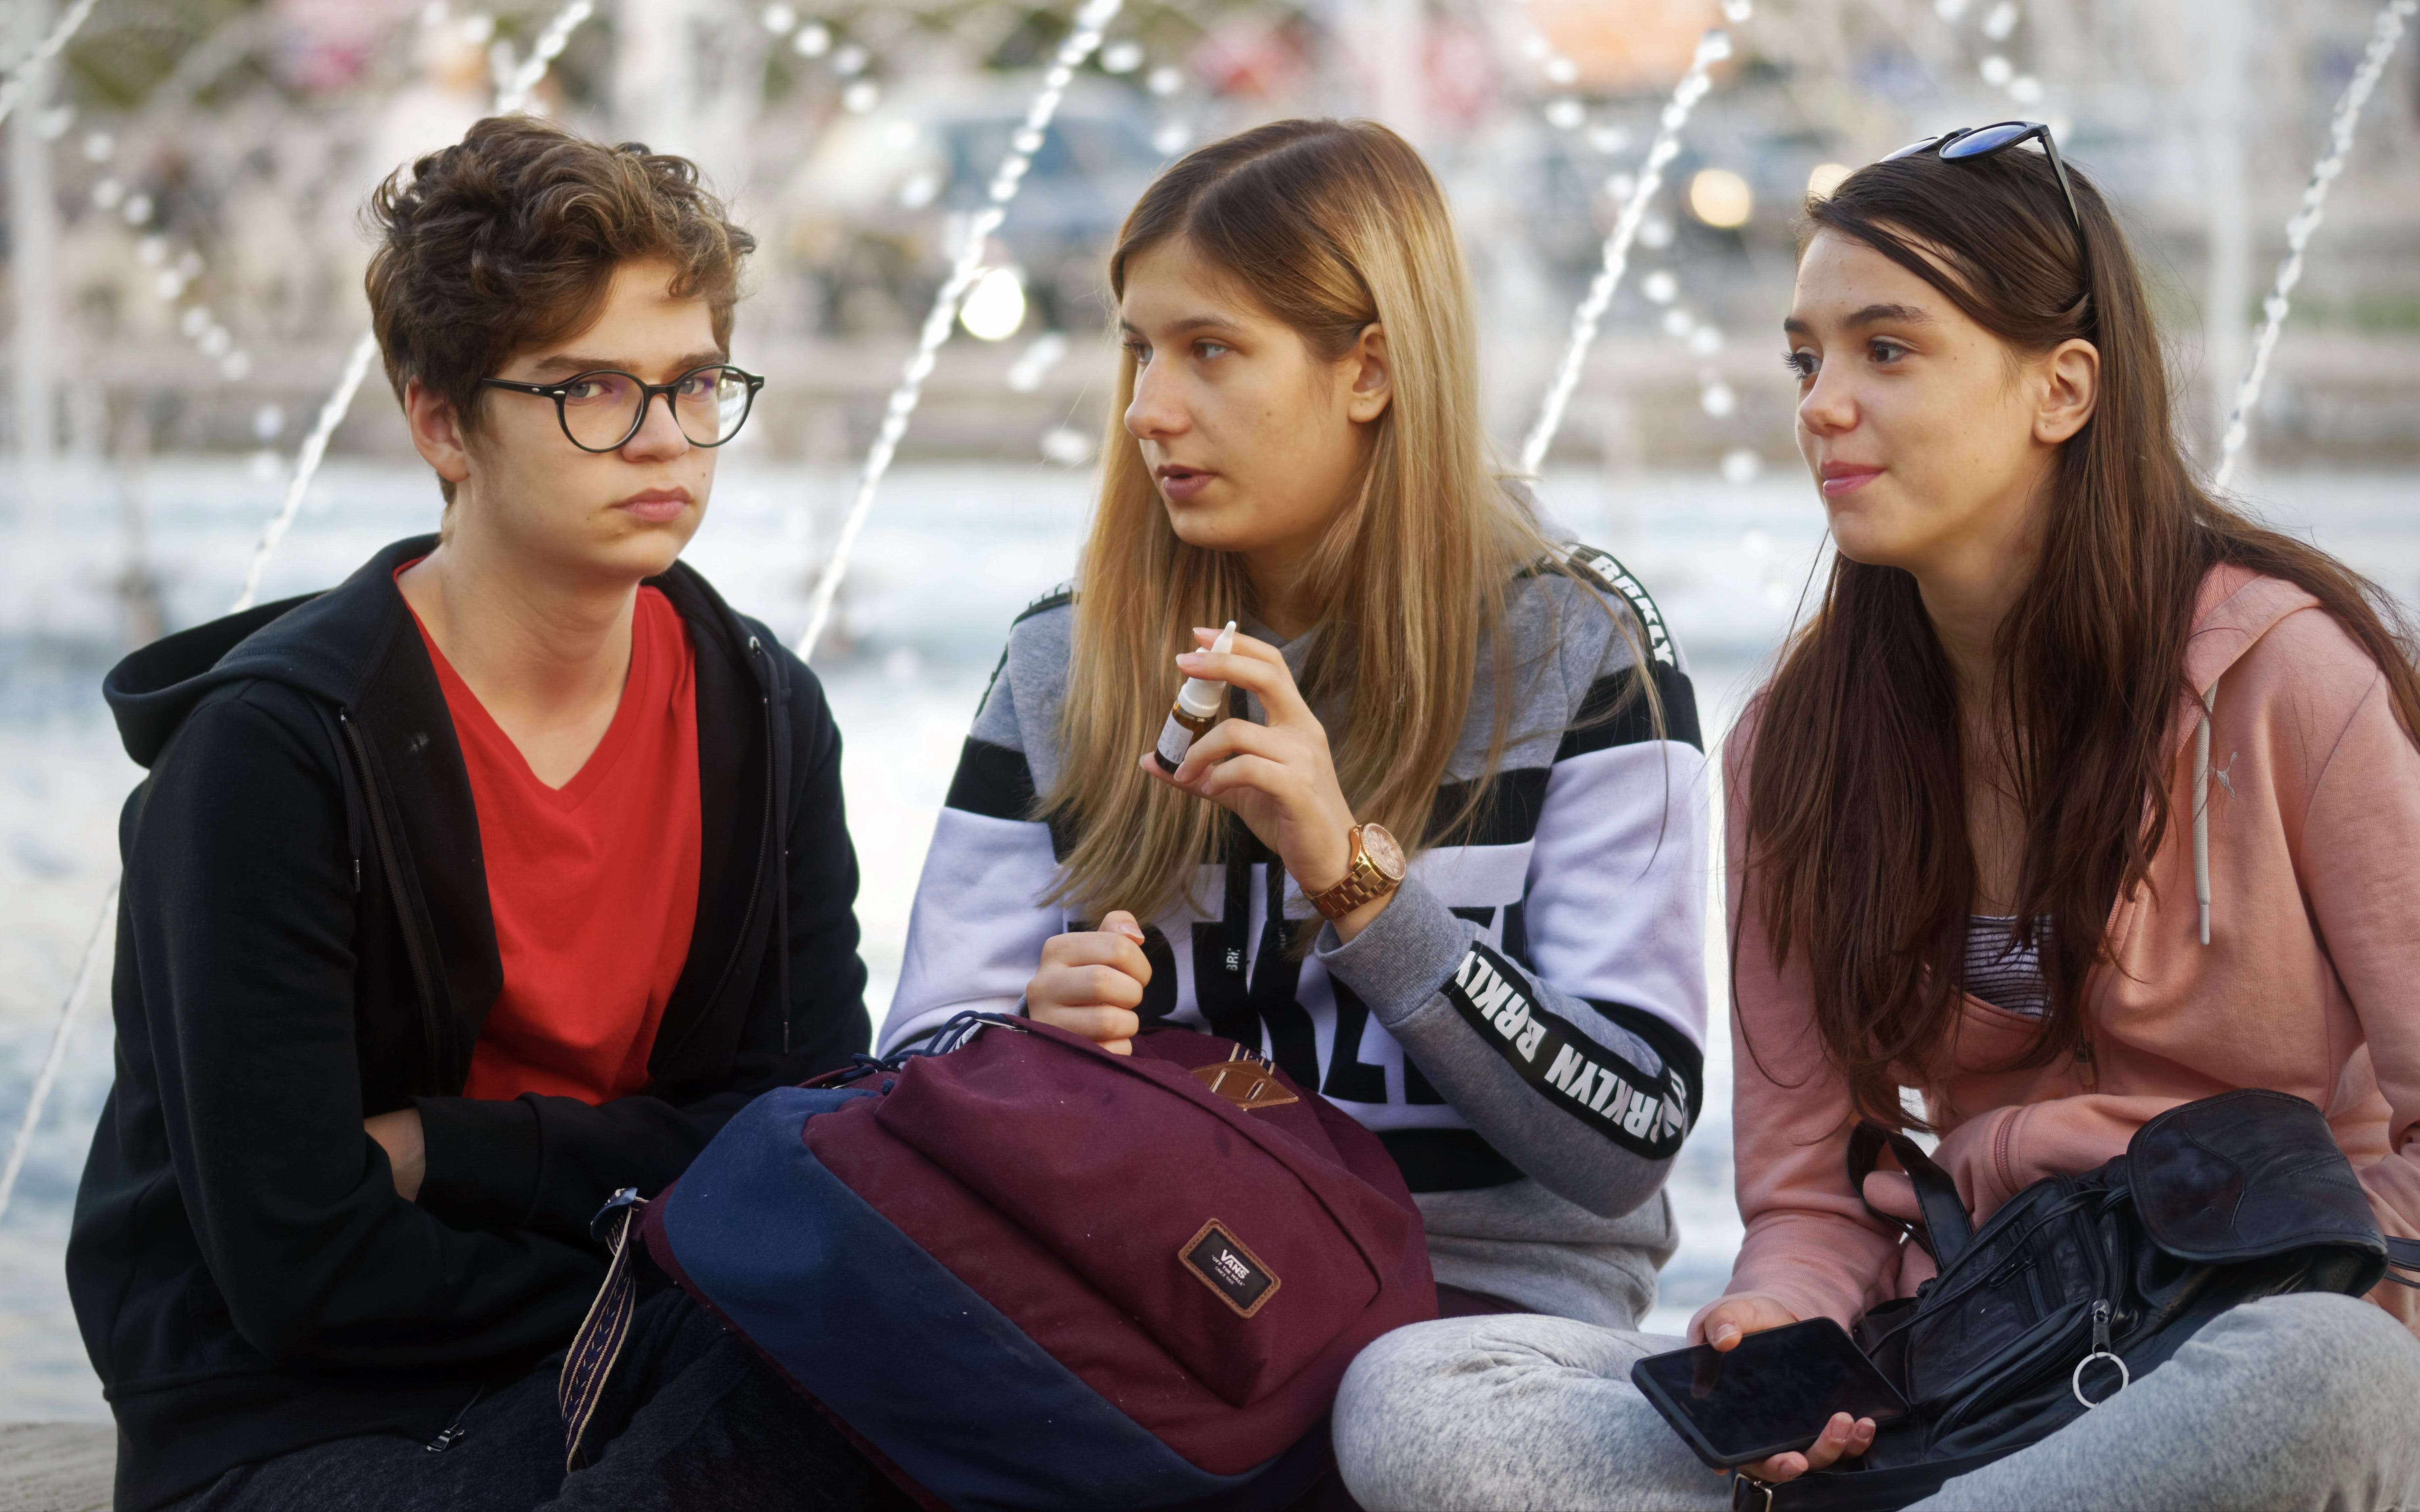 Free stock photo of group of teenagers sitting and talking